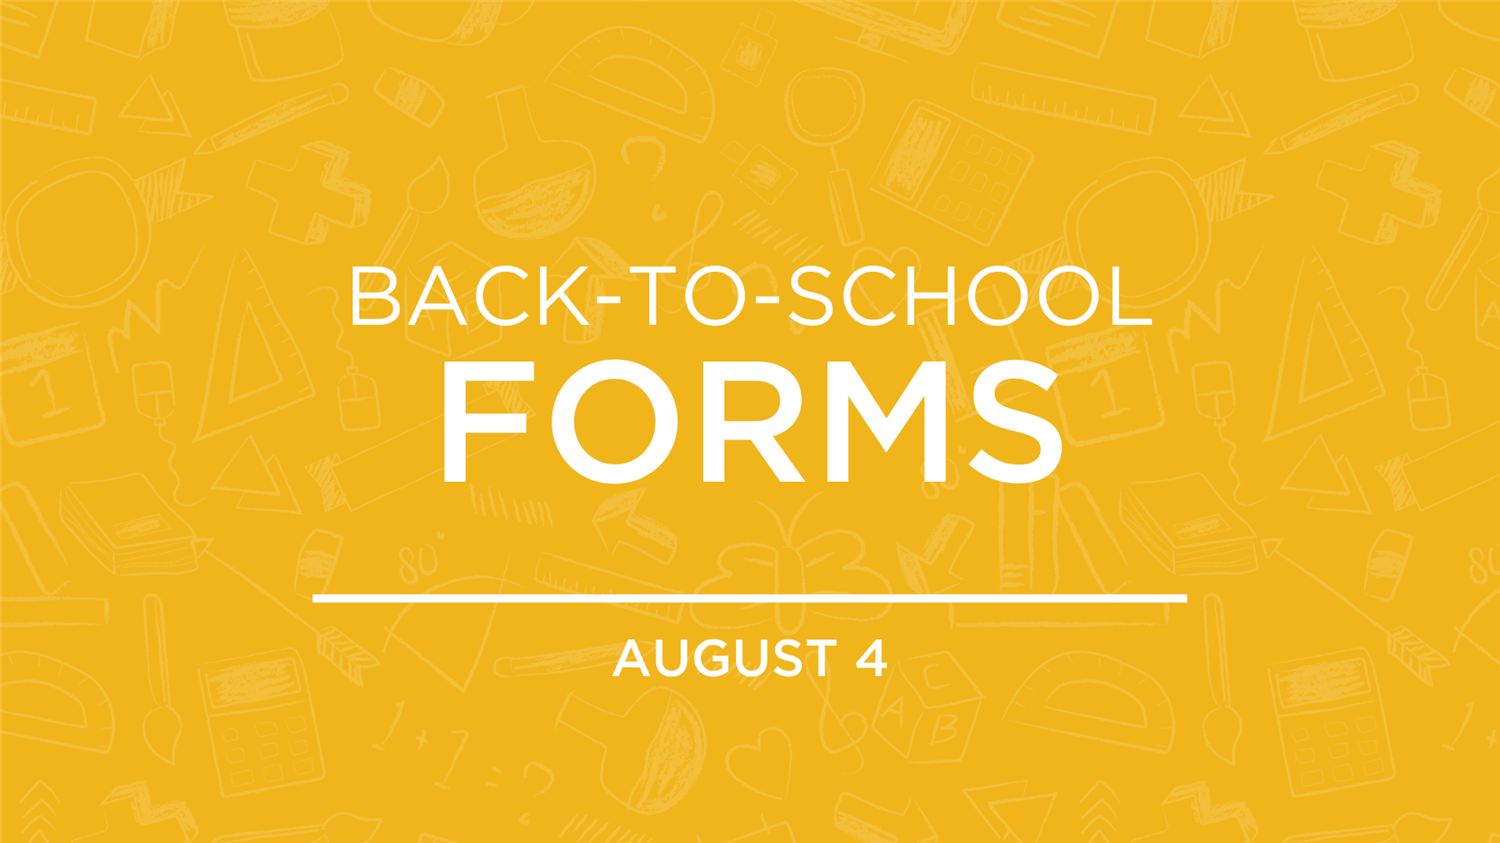 Back-to-School Forms | Aug. 4